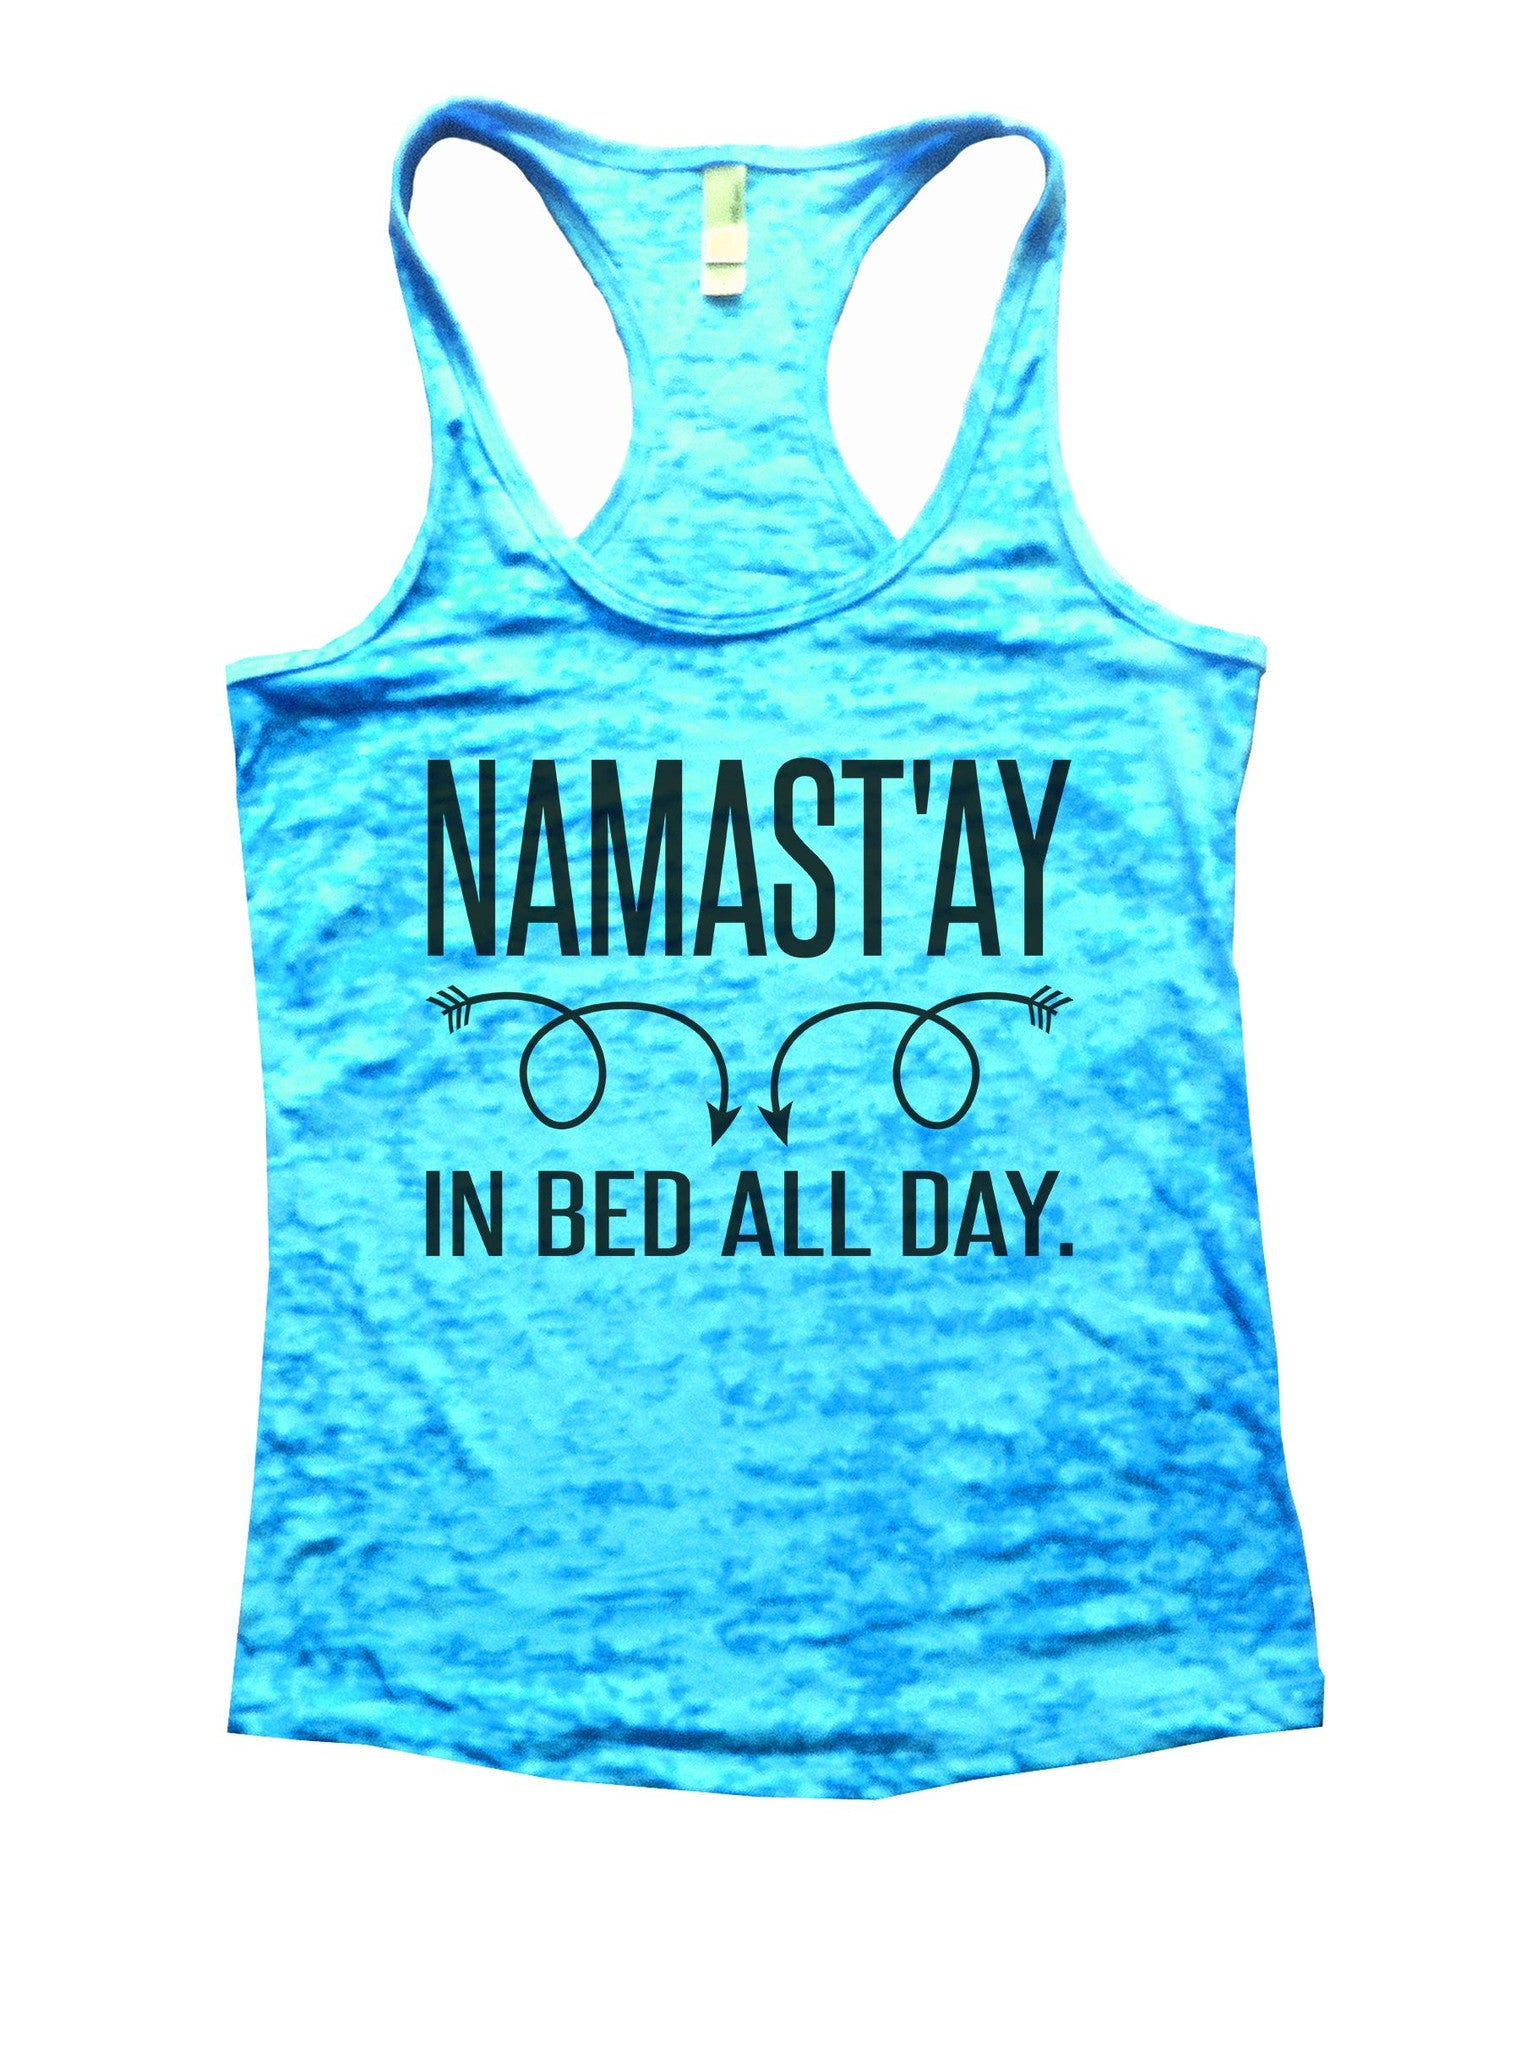 Namastay In Bed All Day Burnout Tank Top By Funny Treadz - 919 - Funny Shirts Tank Tops Burnouts and Triblends  - 4